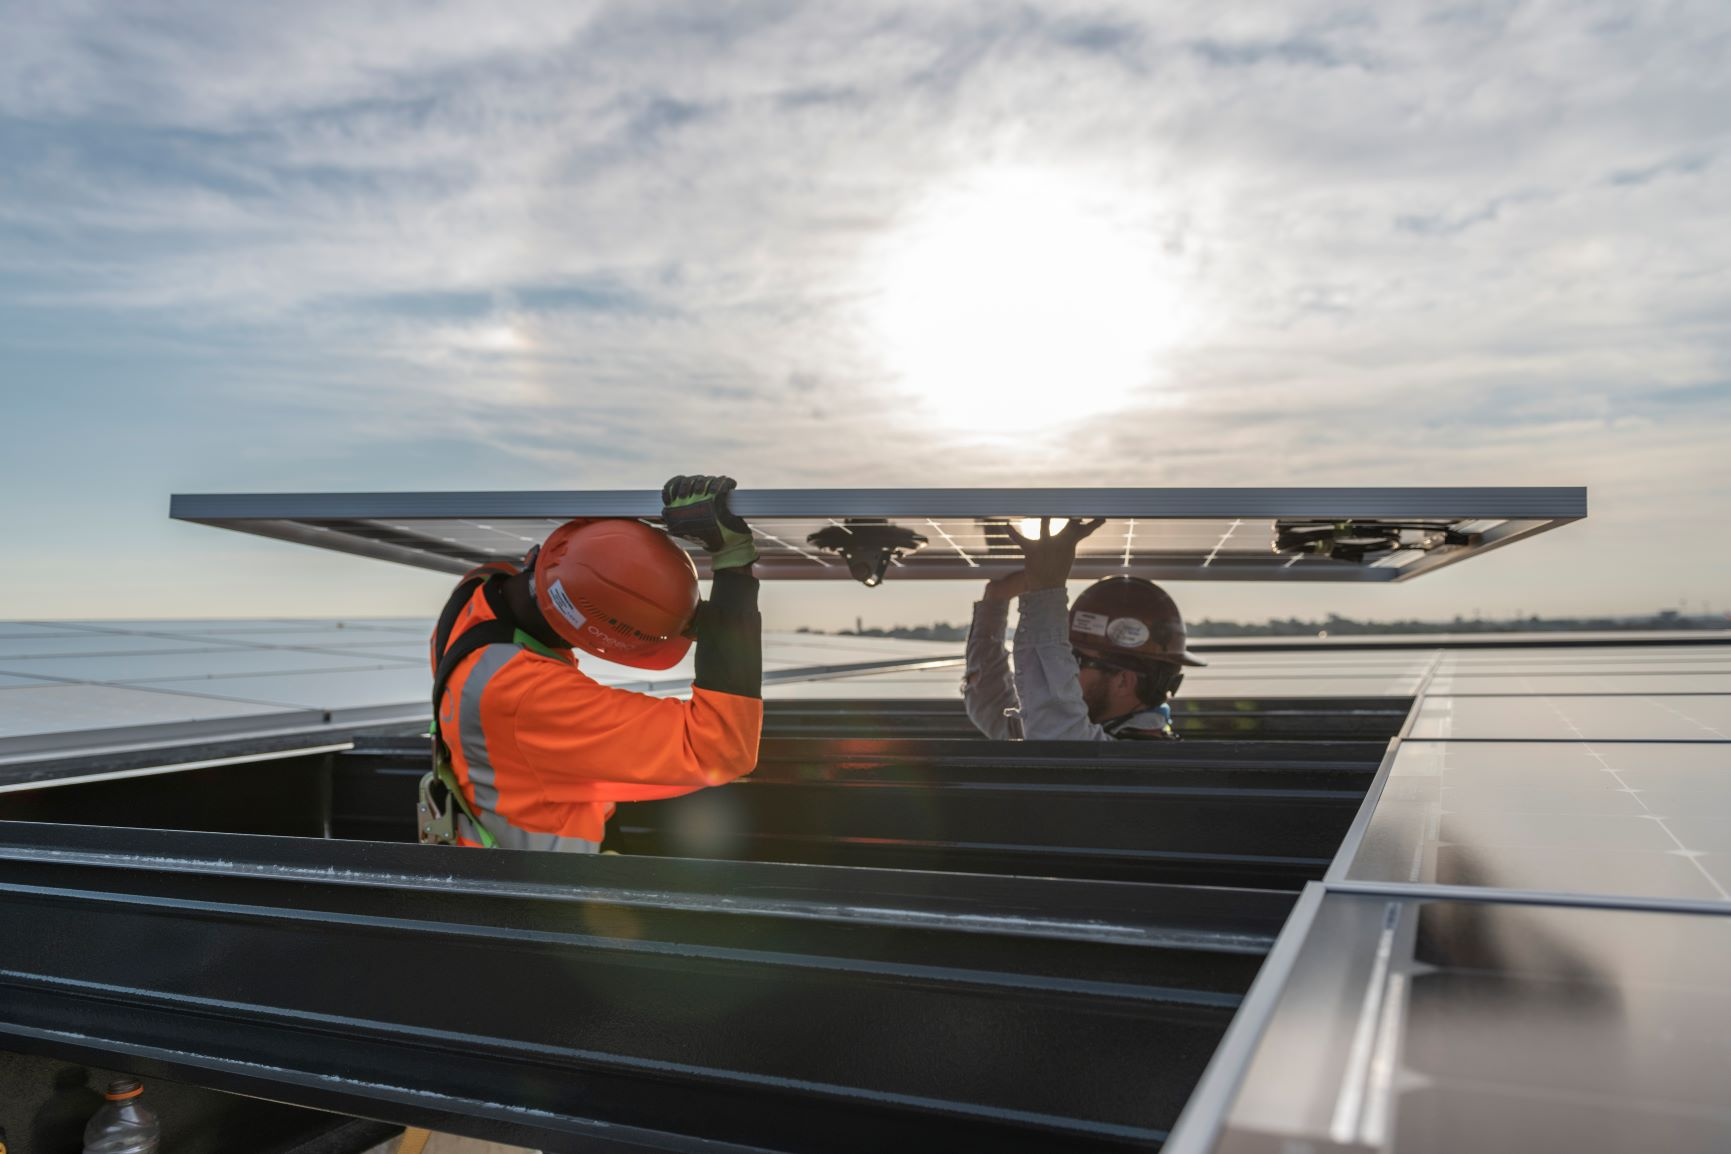 Workers installing solar panels on a building in San Antonio, TX.